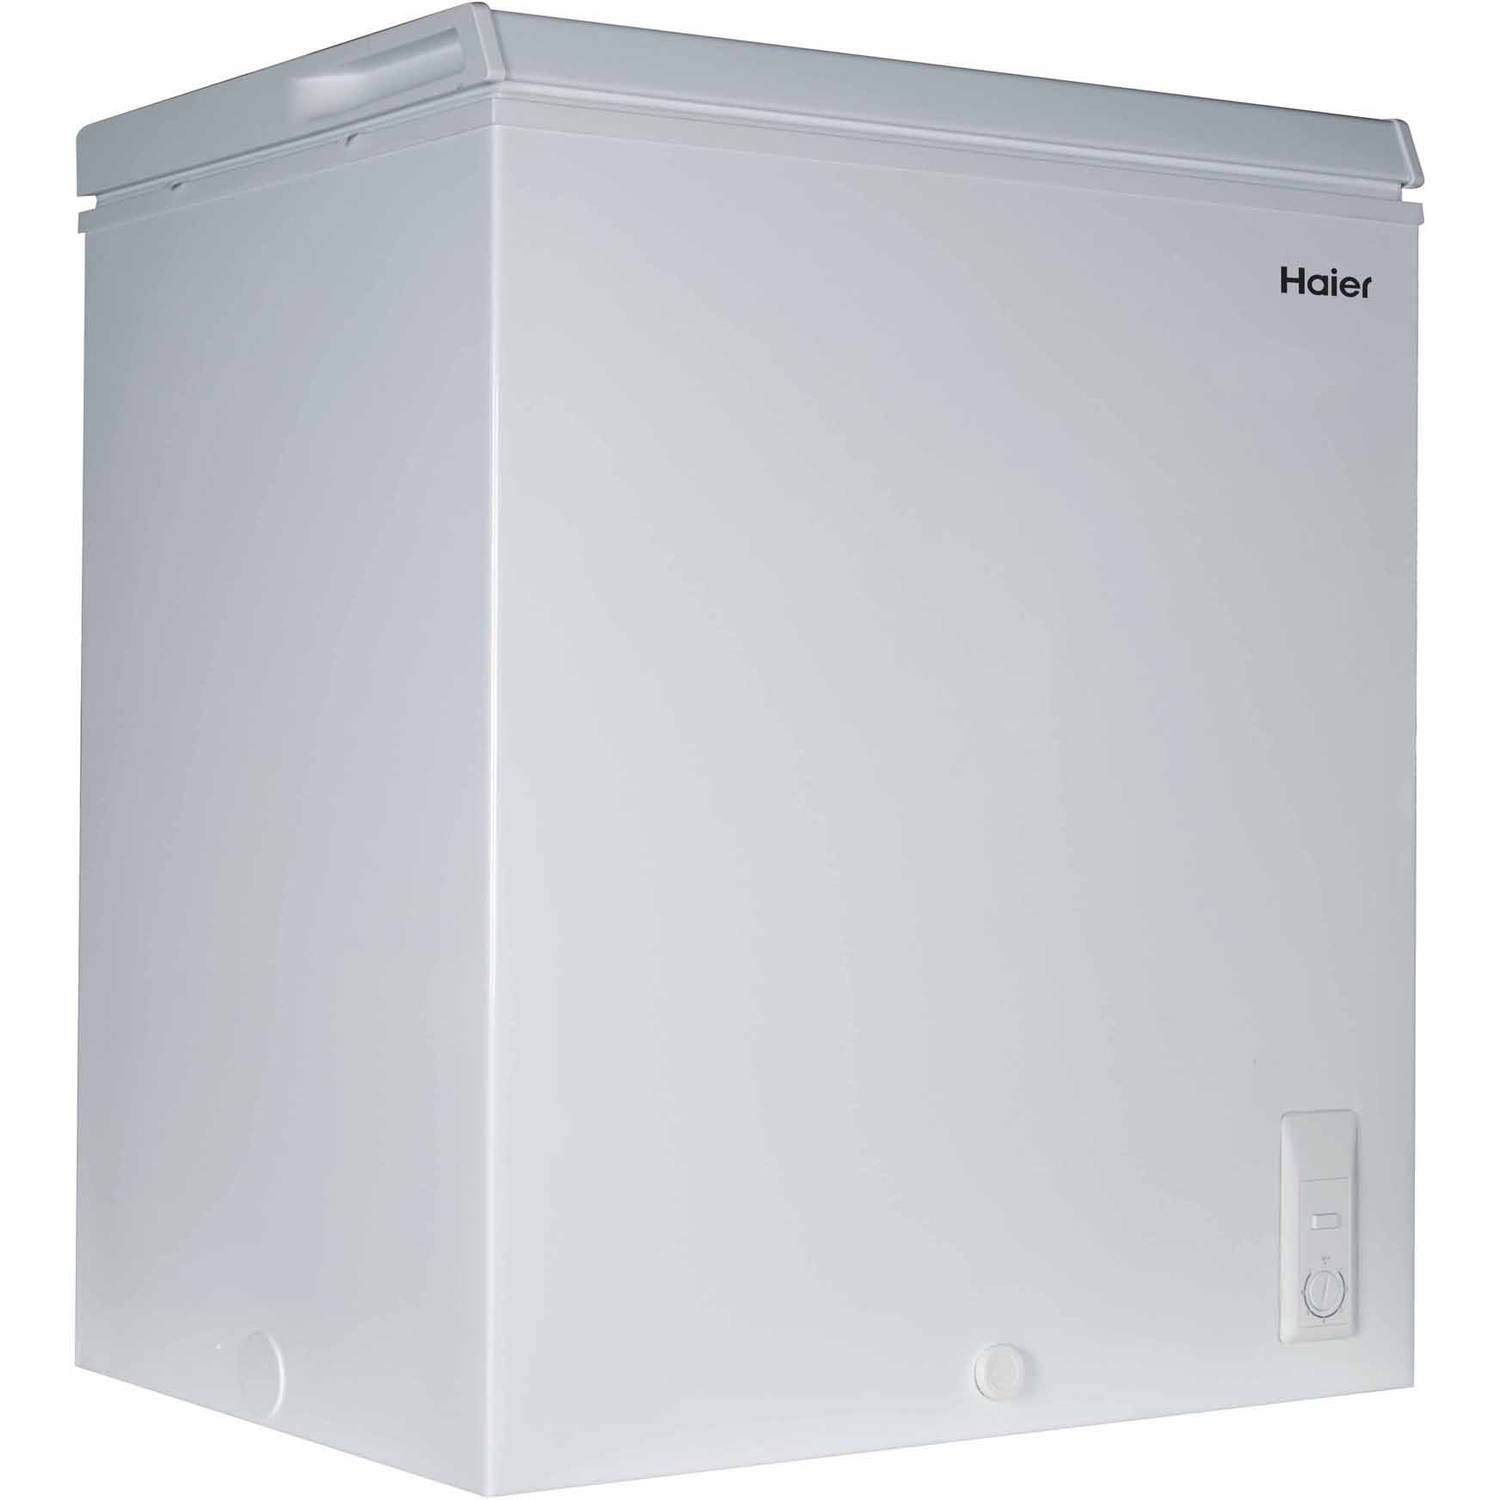 haier 50 cu ft capacity chest freezer white hf50cw20w - Chest Freezers On Sale